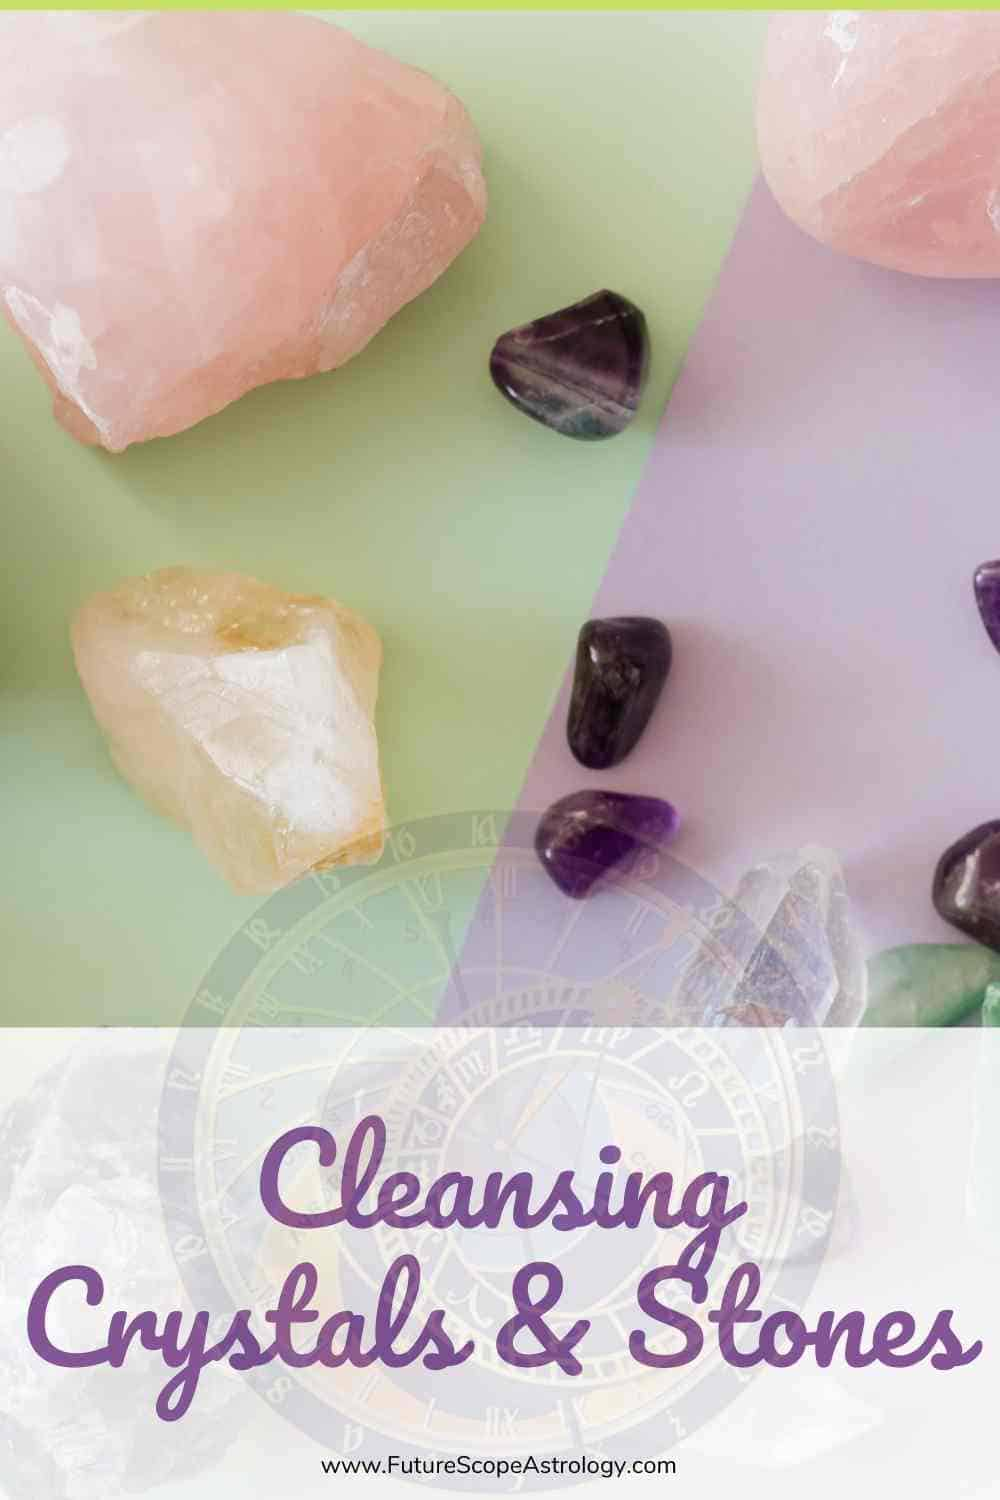 Crystals and stones: Crystal Healing, Lithotherapy